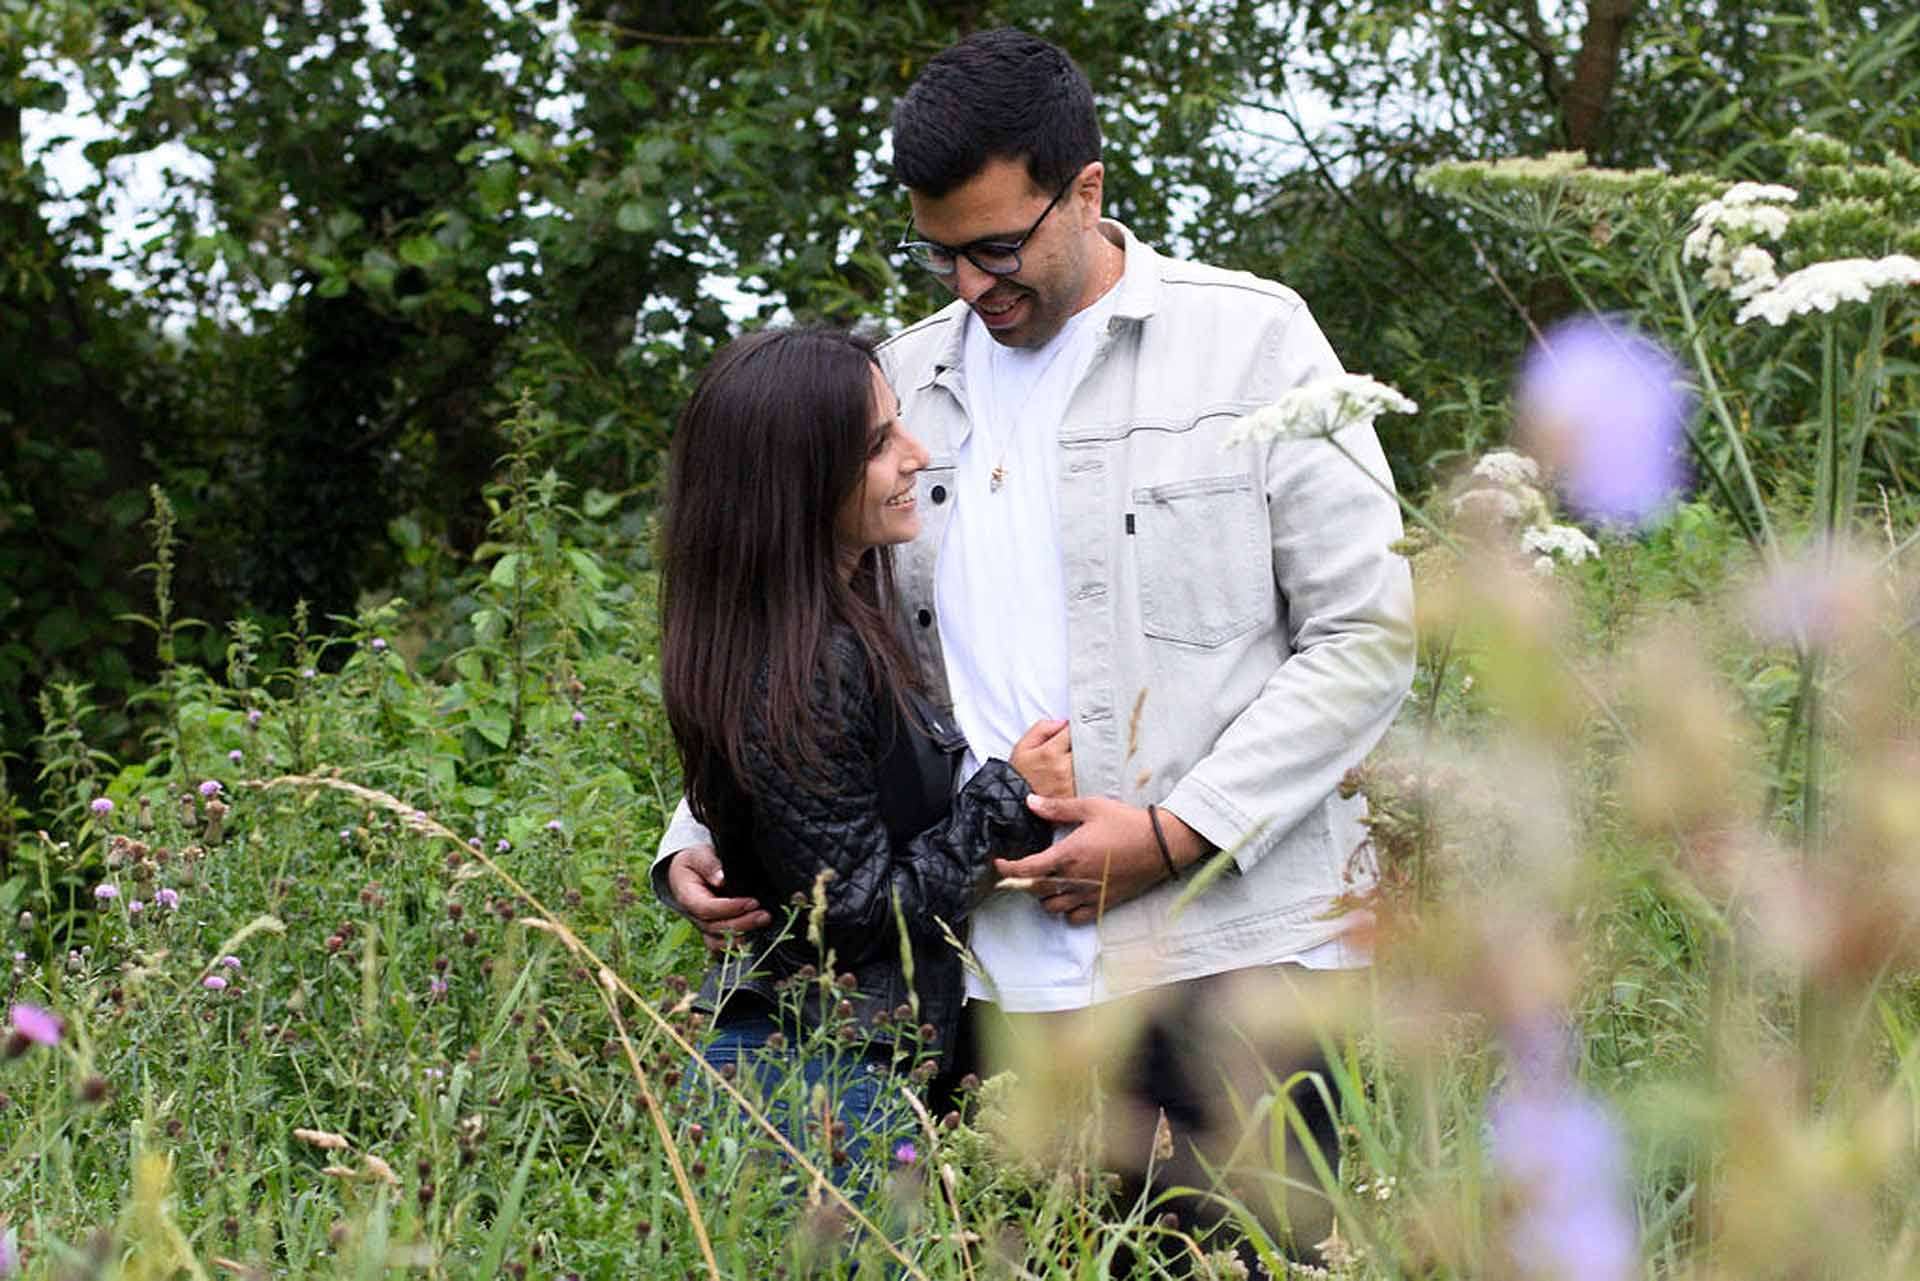 Berkshire engagement photography in Goring and Streatley